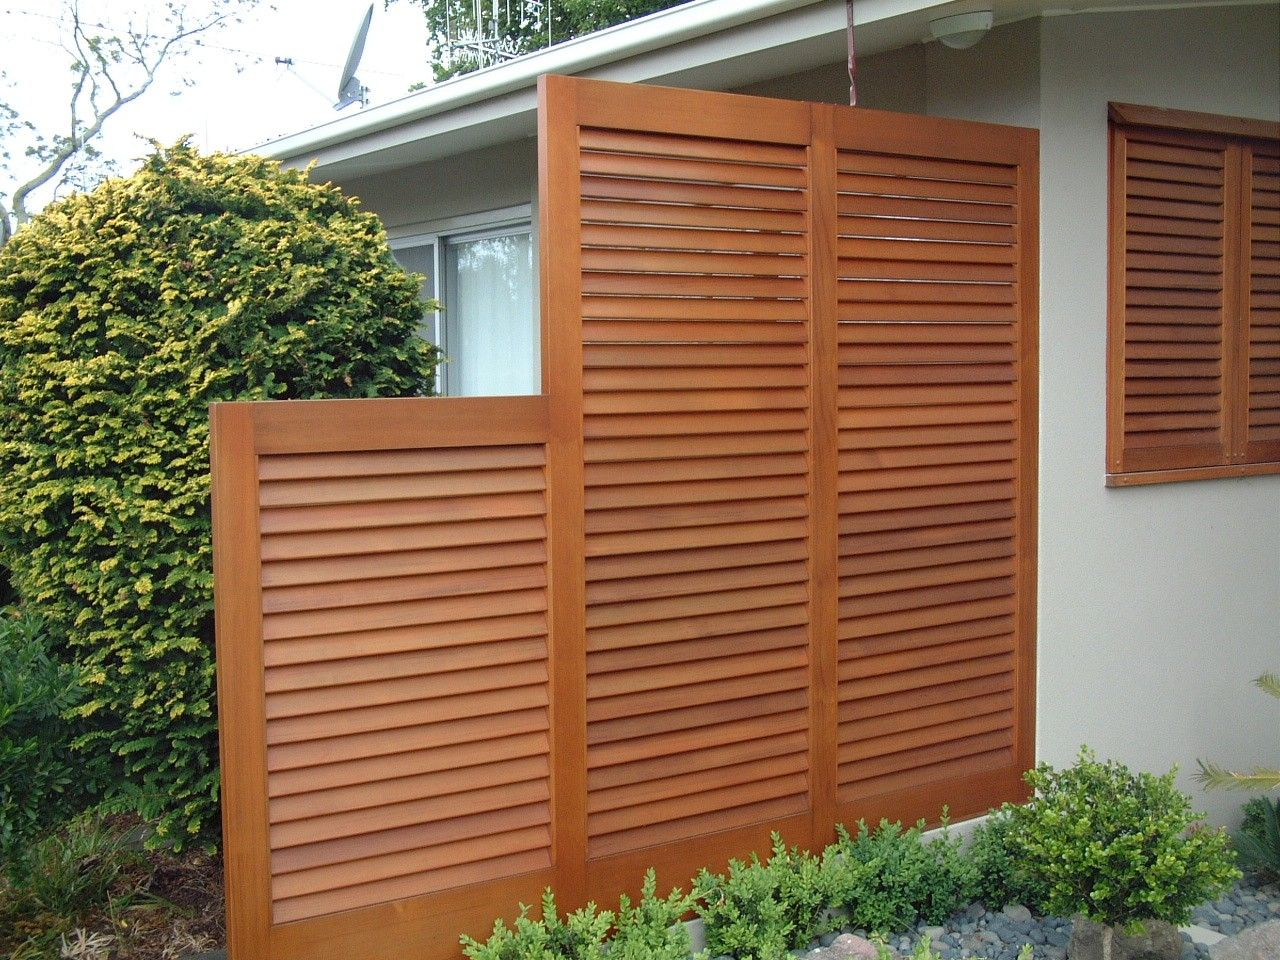 Beautiful exterior outdoor privacy screens shop at for Large outdoor privacy screen